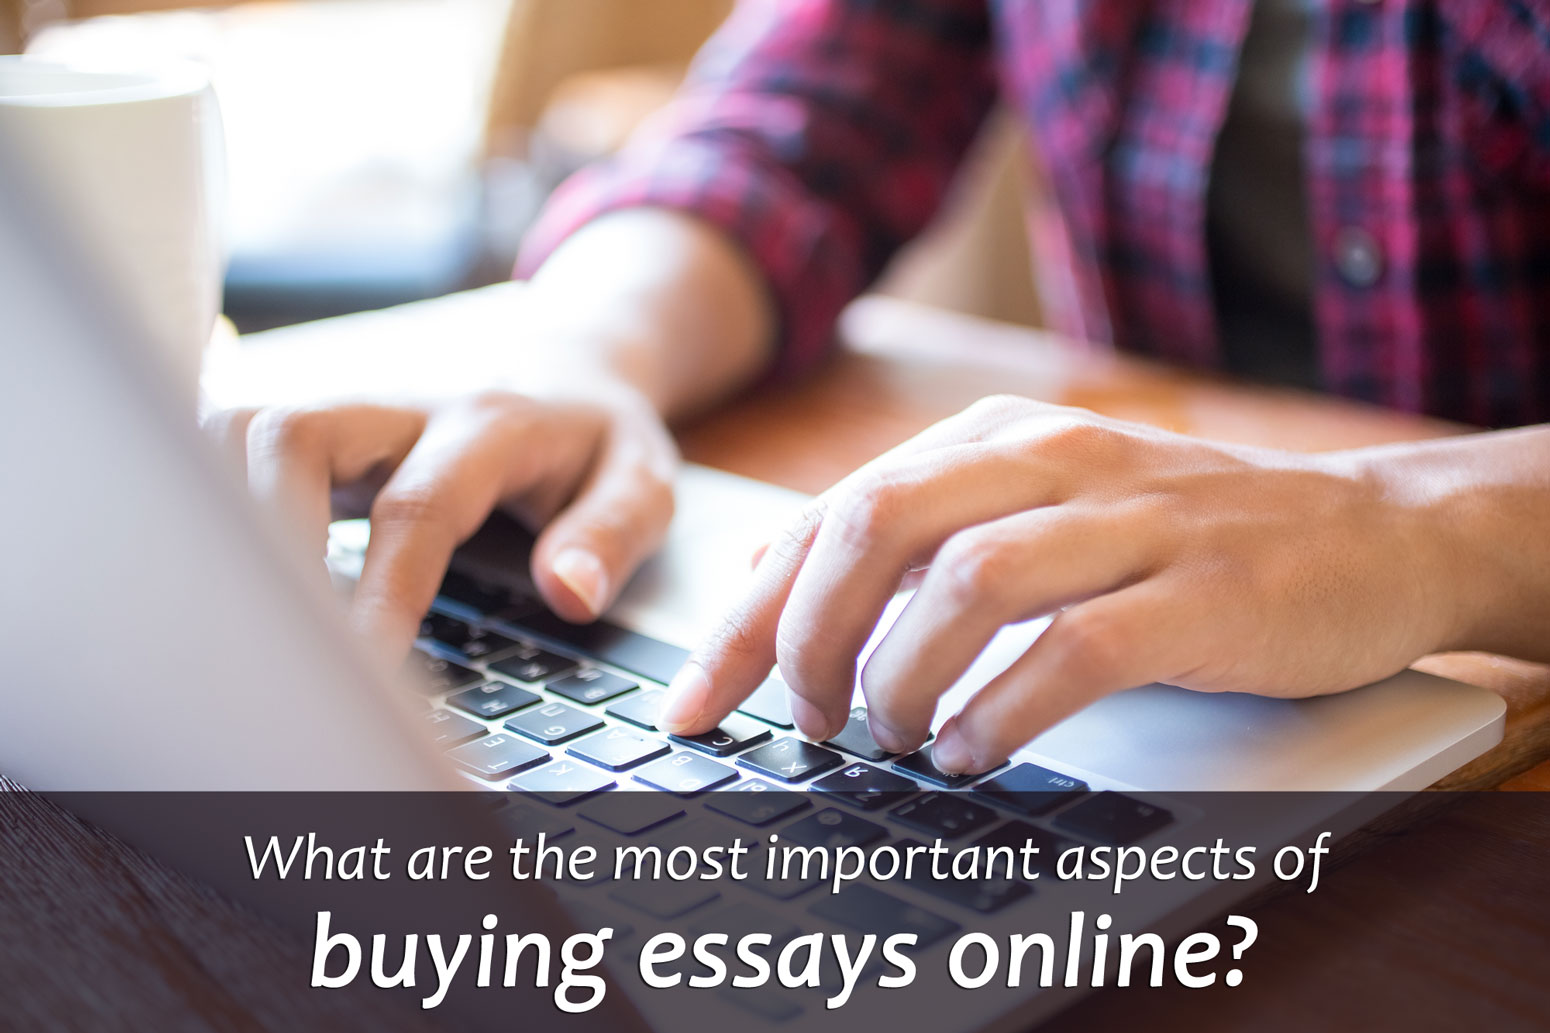 What are the most important aspects of buying essays online?